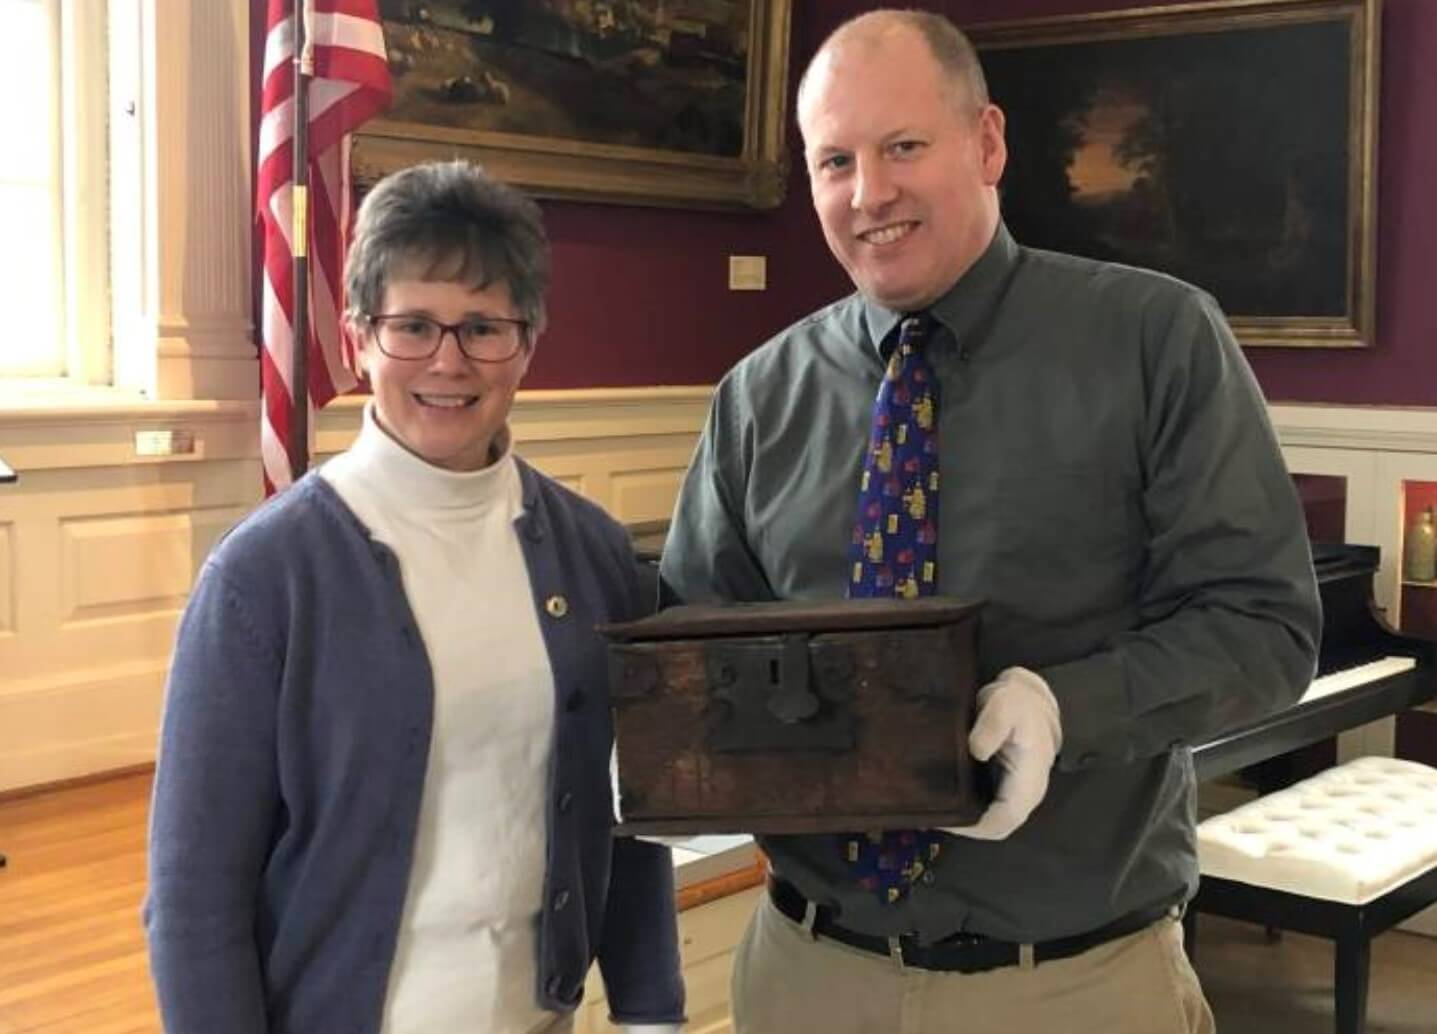 Berks History Center Transfers Local Artifact to Care of Chester County Historical Society